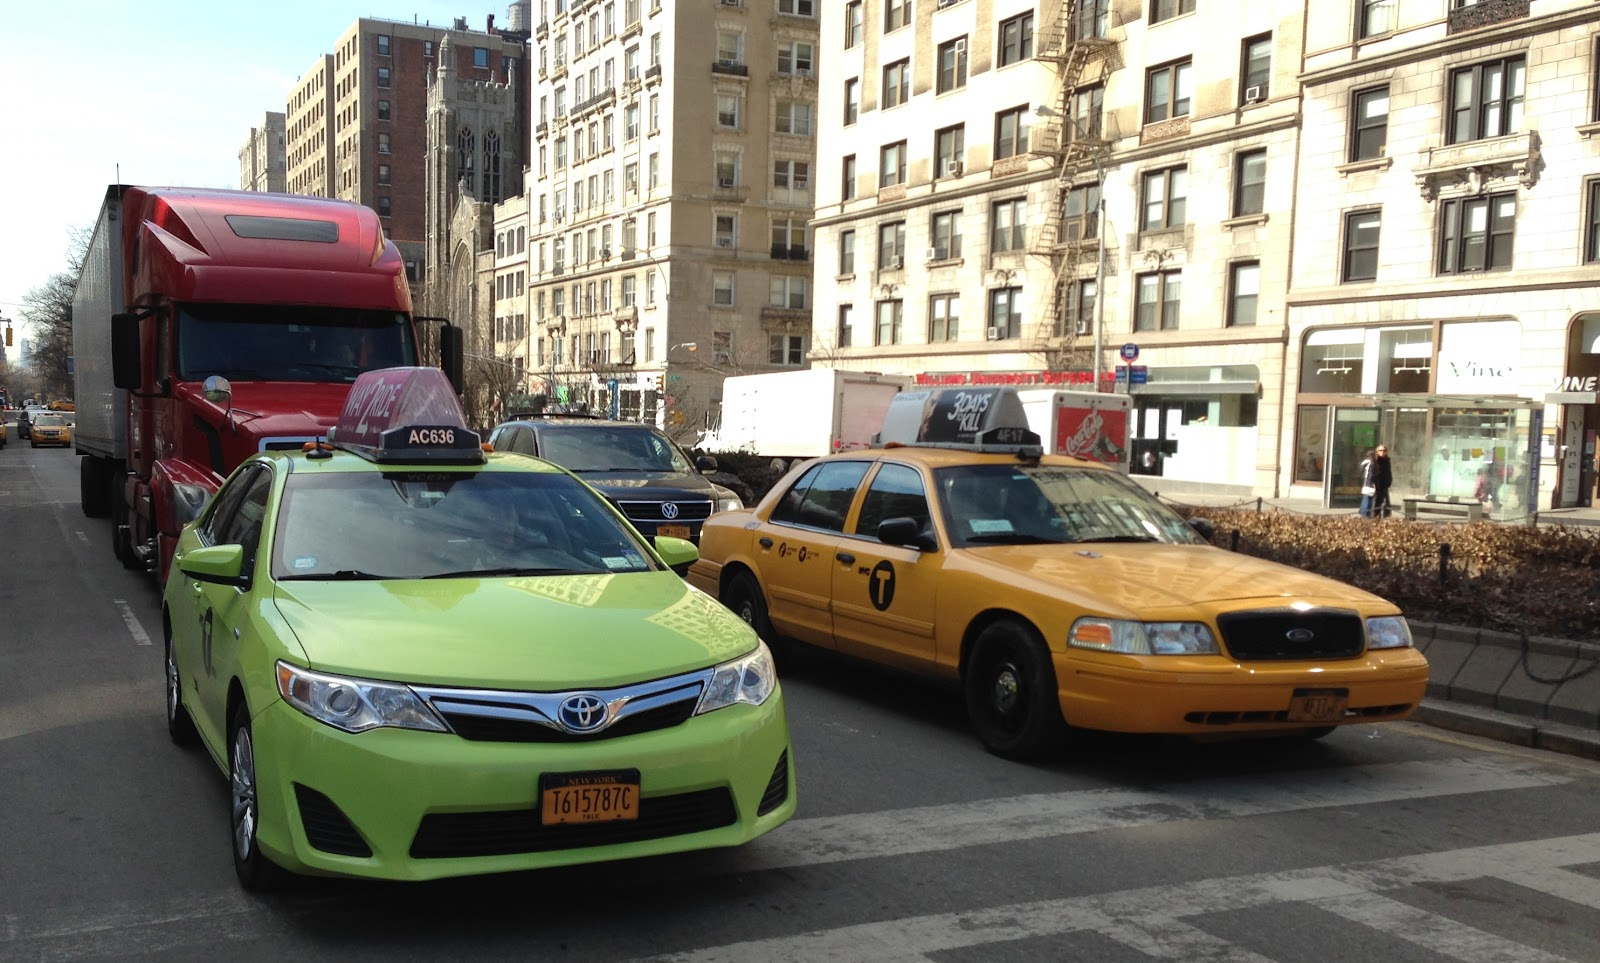 Taxicabs_of_New_York_Cityjpg